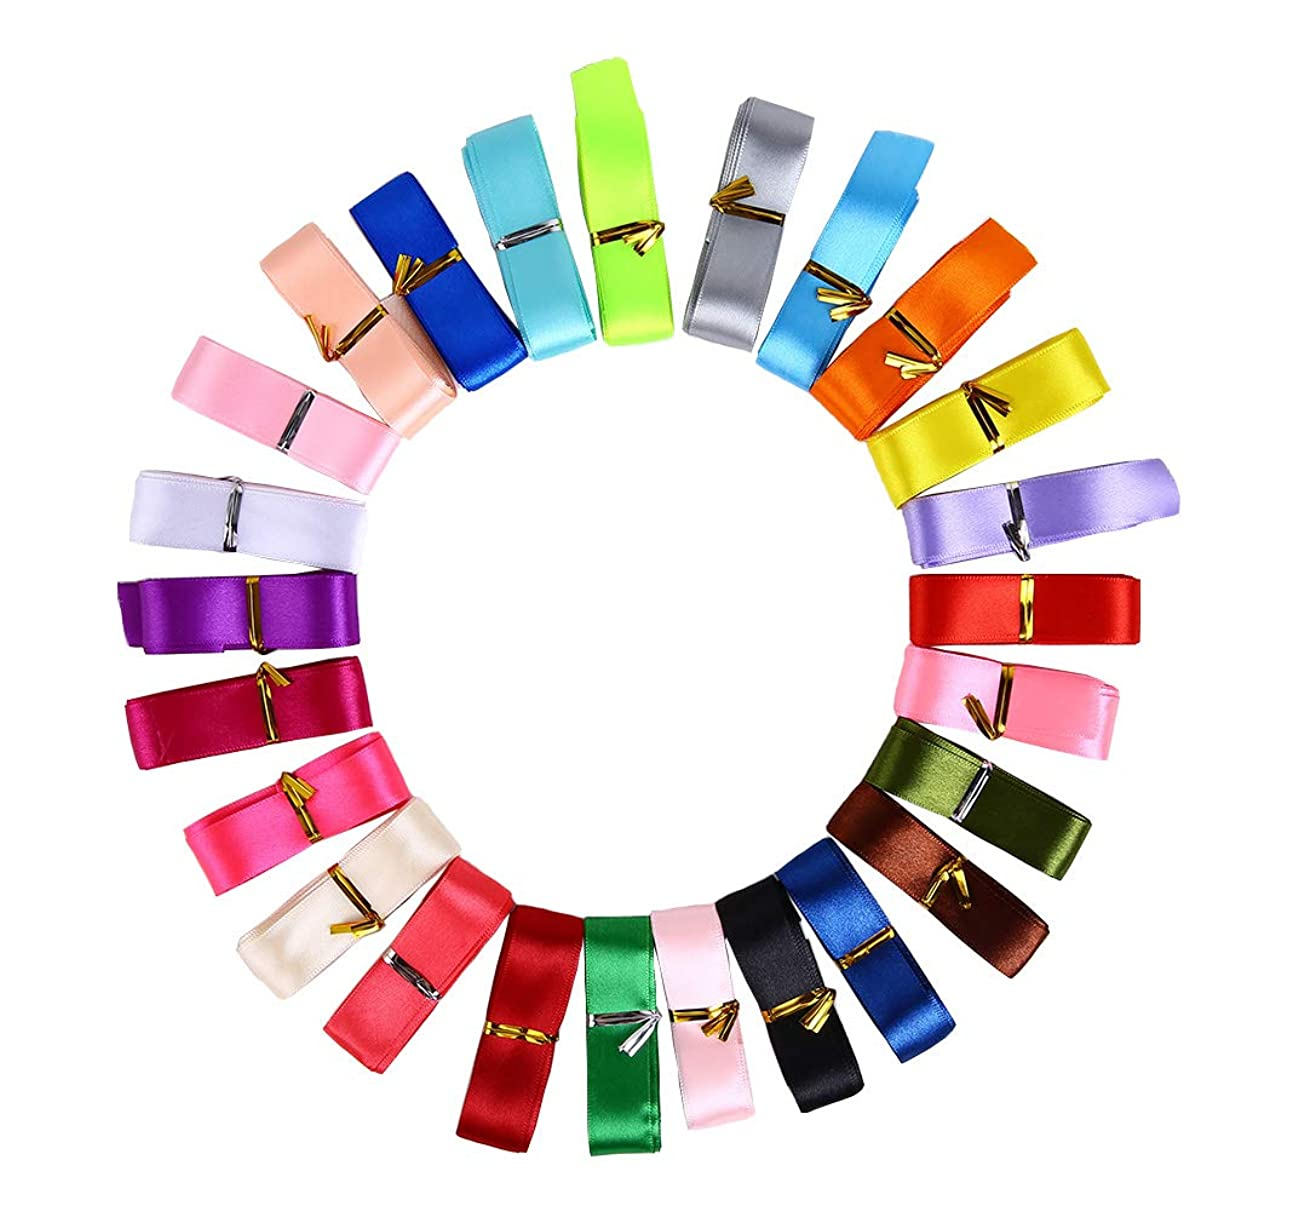 50 Yards Farbic Satin Ribbon 1 inch with 25 Colors Solid Hair Bow Party Wedding Supply